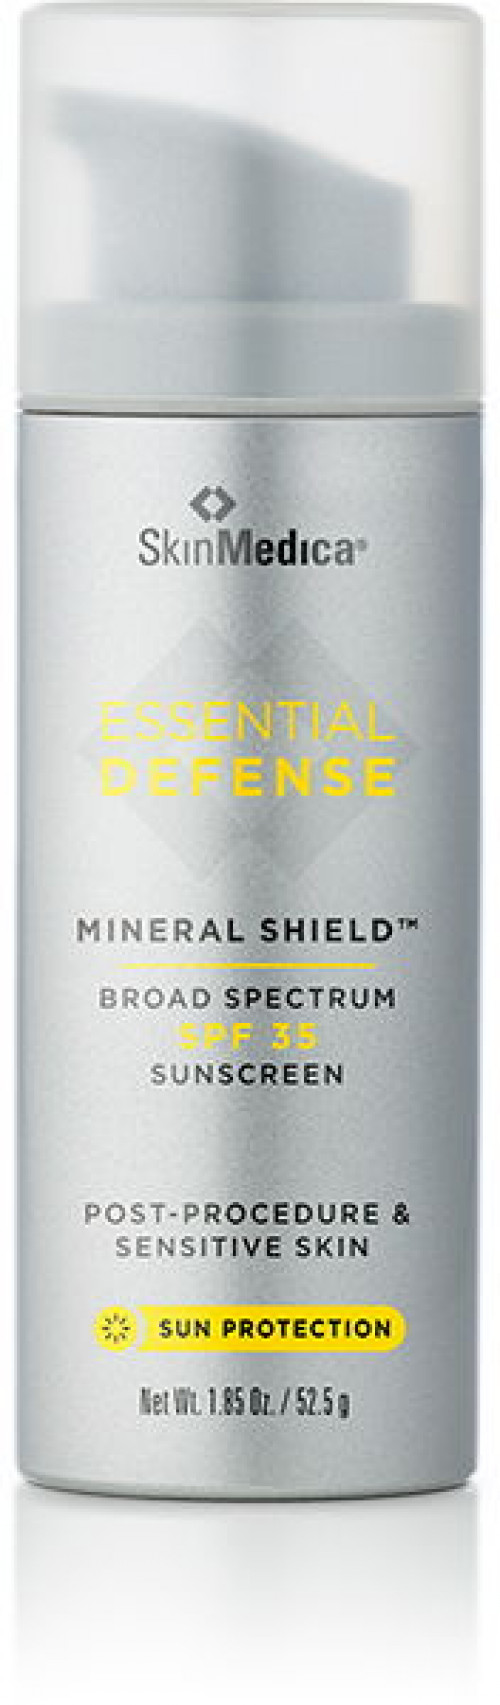 Essential Defense Mineral Shield SPF 35 by Skinmedica